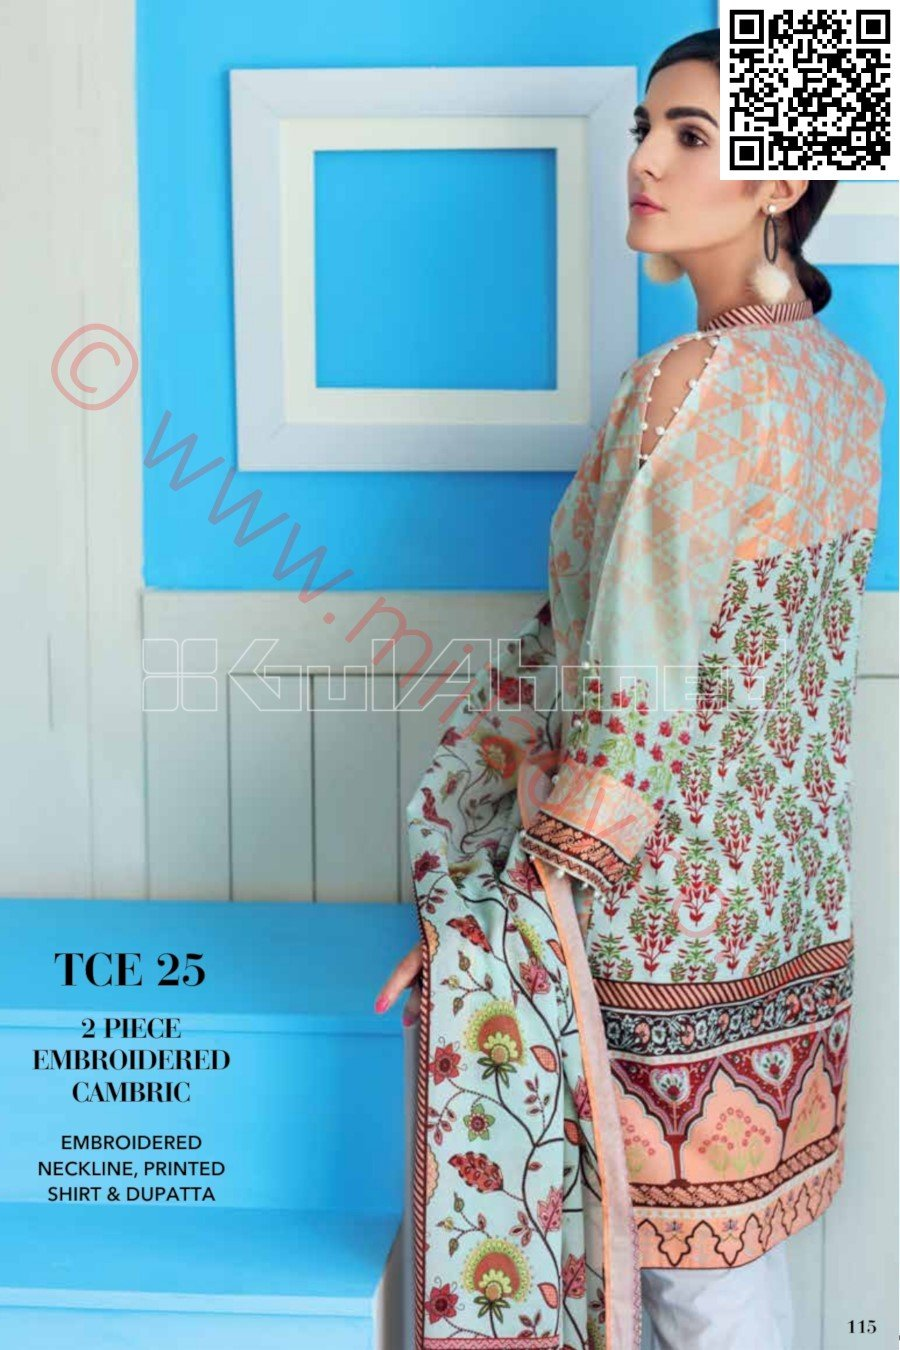 Gul Ahmed Pre-Fall Cambric 2018 suit TCE25 - Printed Kameez, dupatta with embroidered neckline